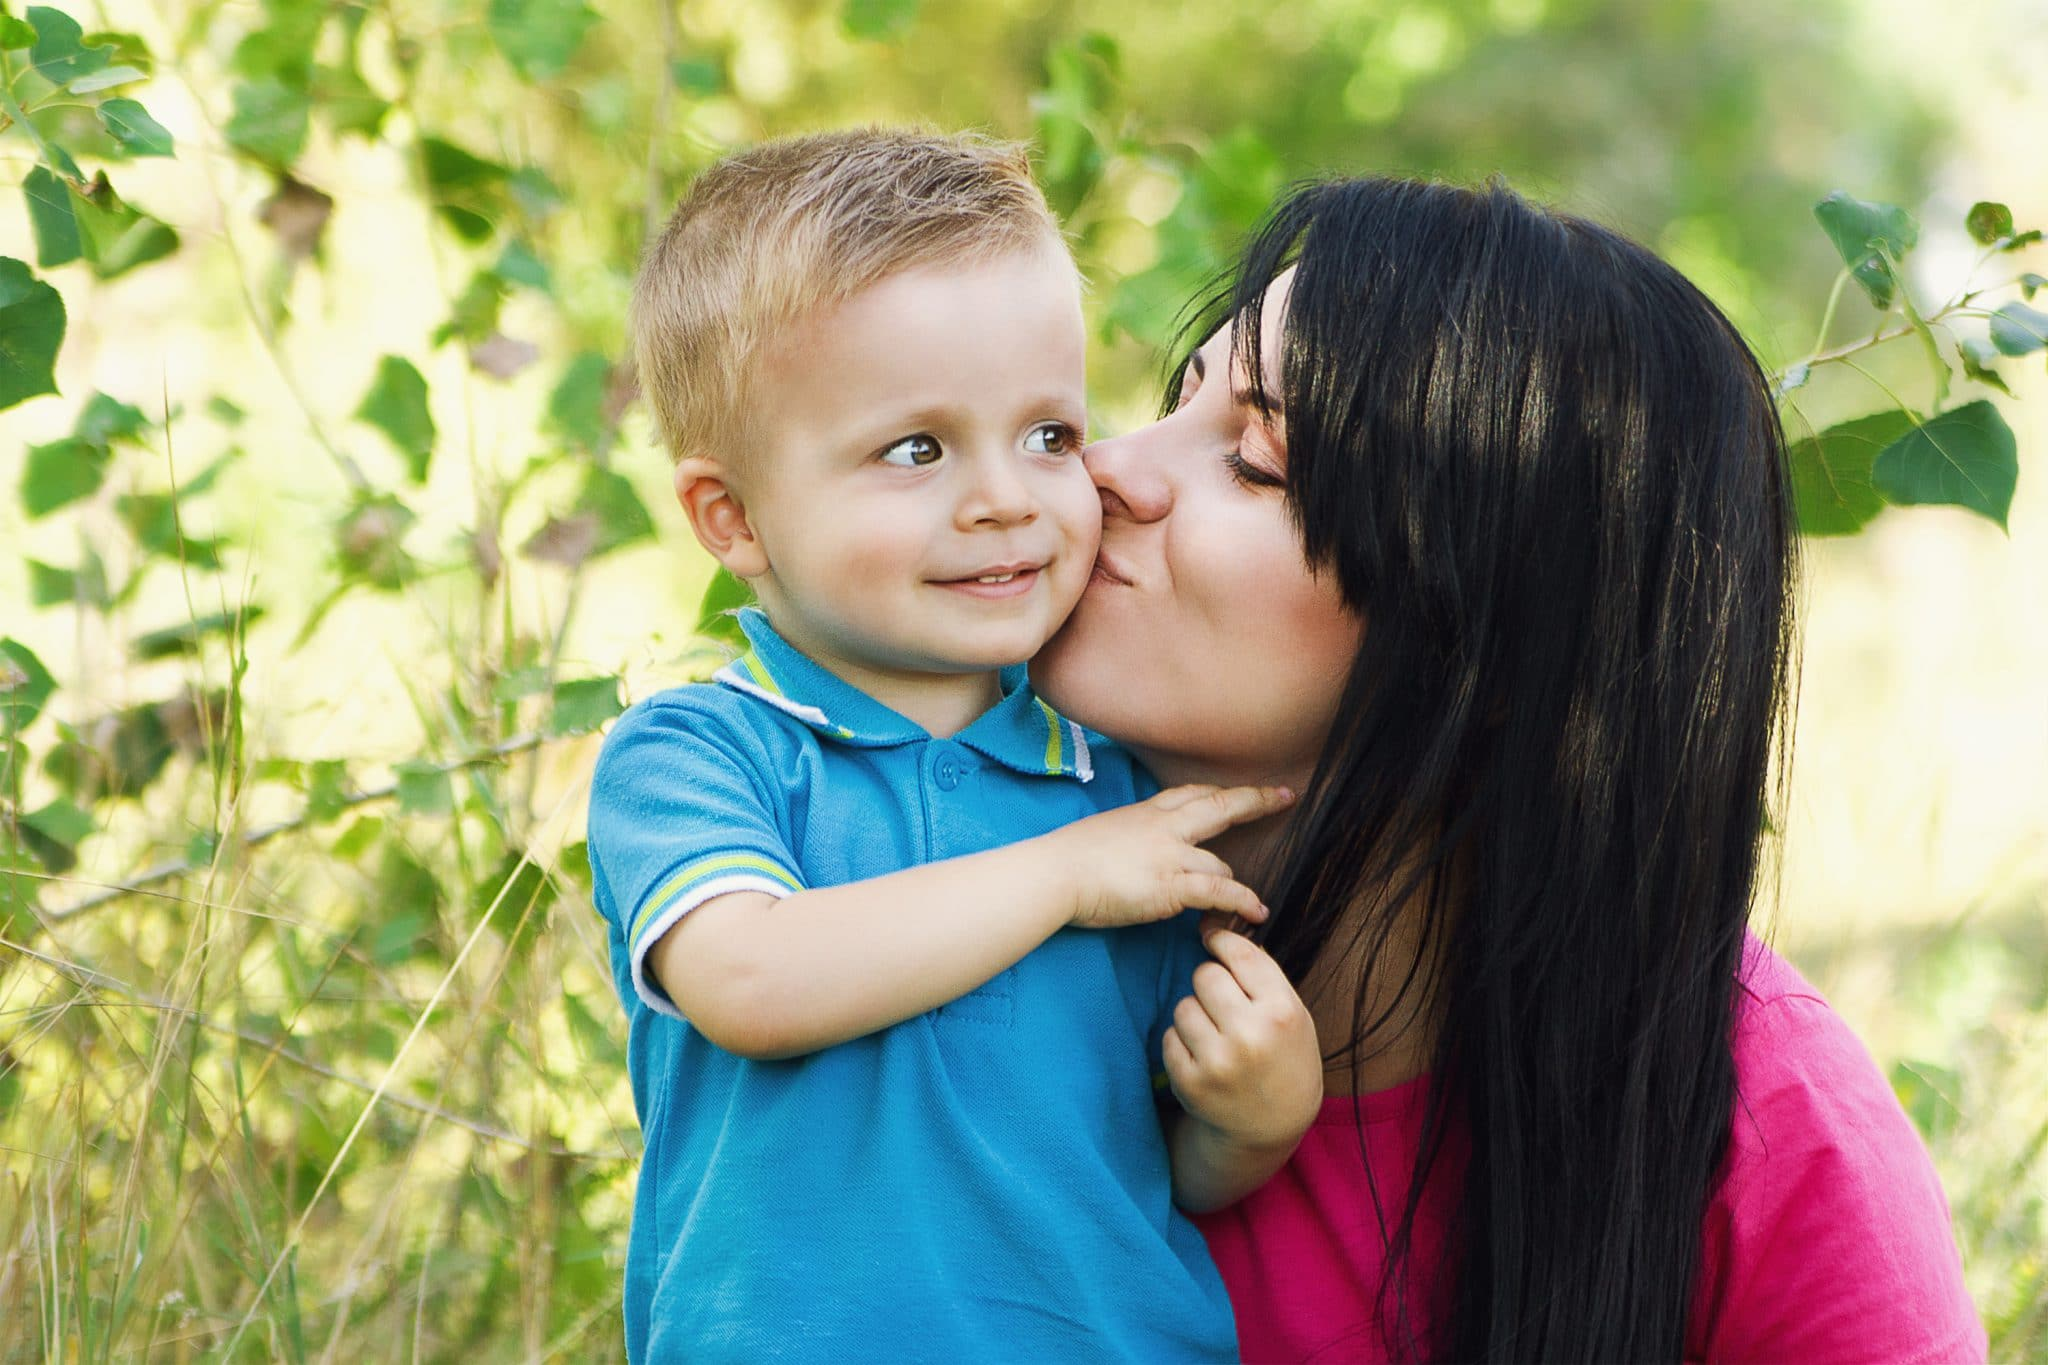 Child Custody Orders: To File or Not To File